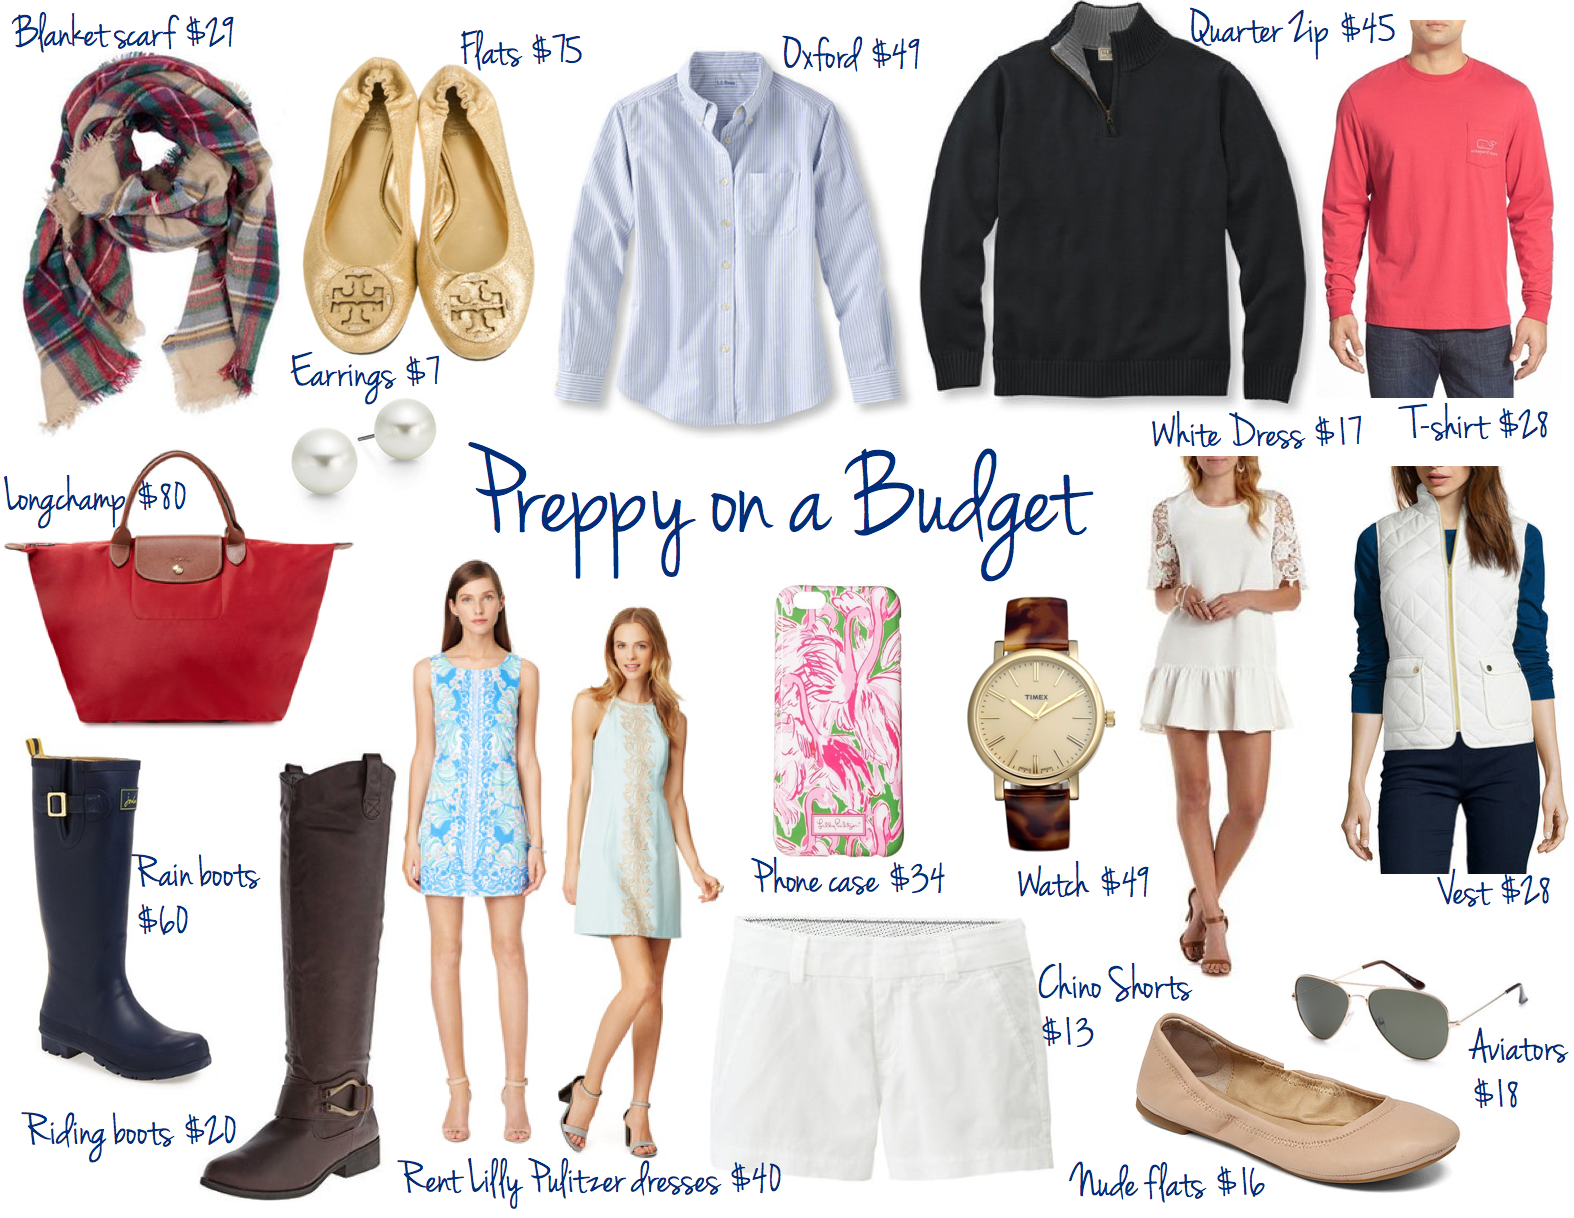 Preppy On a Budget | Where to Shop & What Pieces to Buy